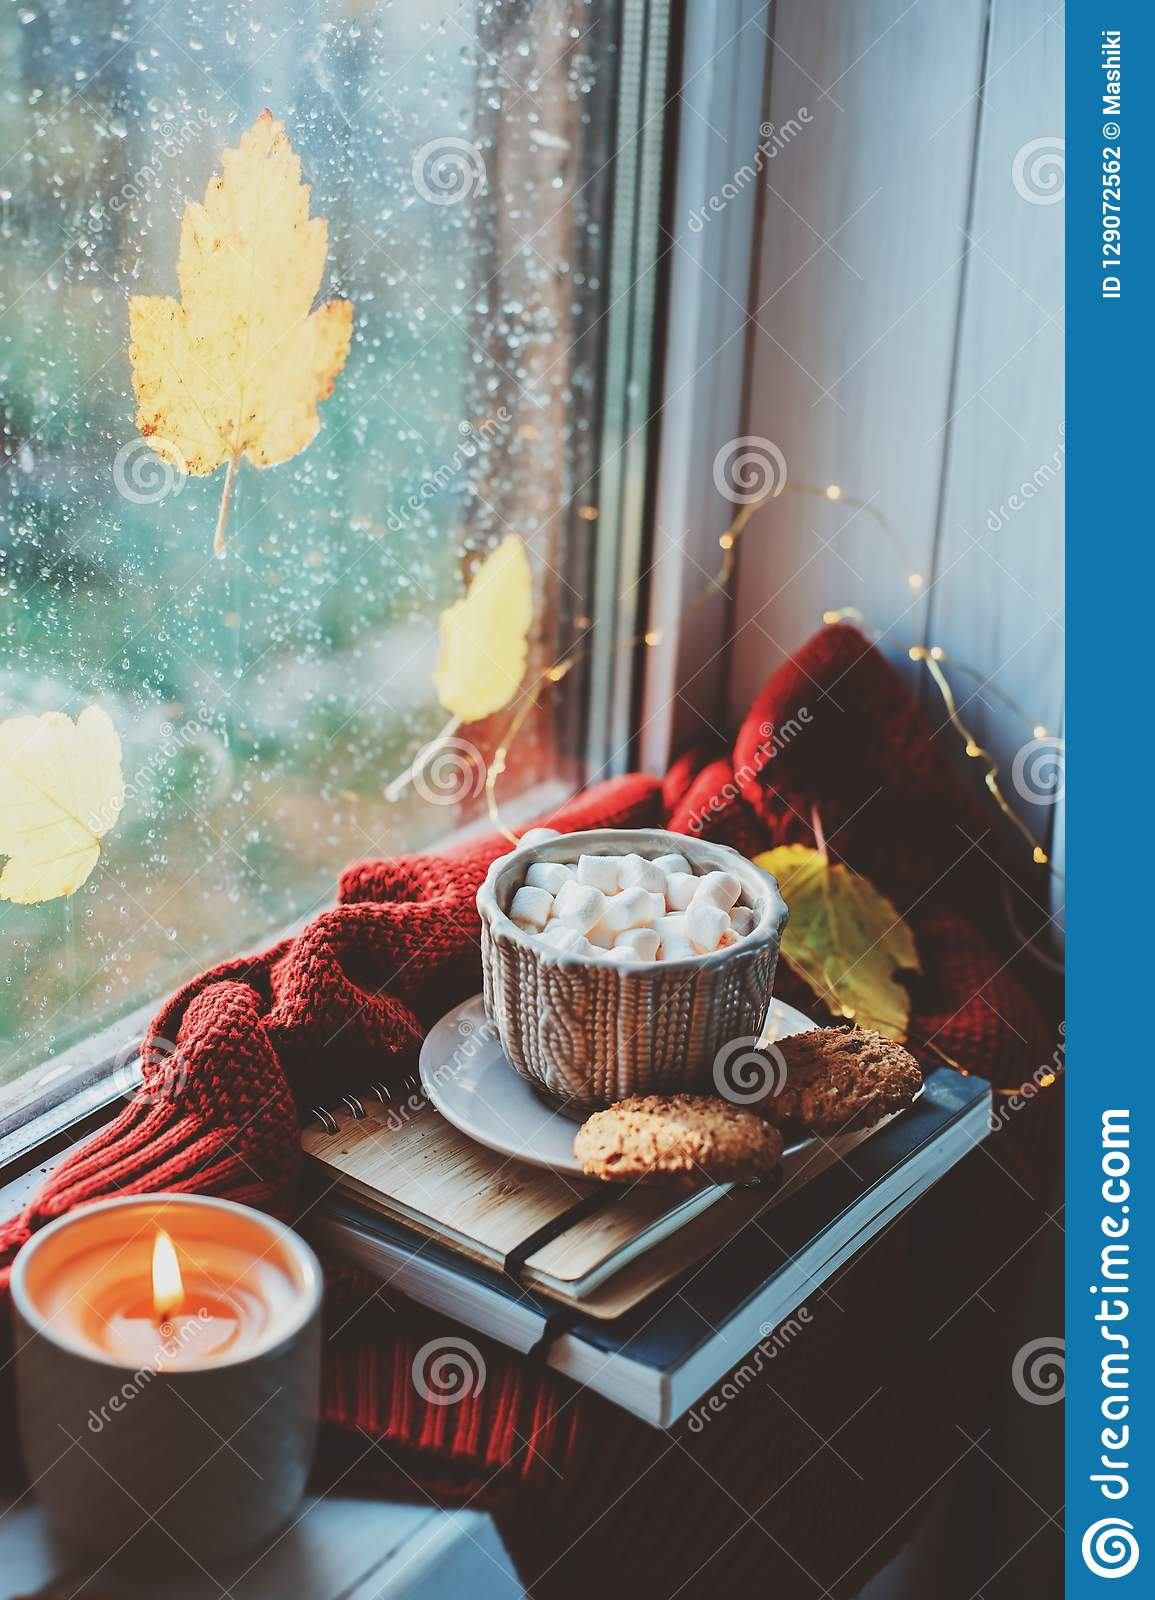 cozy autumn morning at home. Hot cocoa with marshmallows and candle on window in rainy cold day